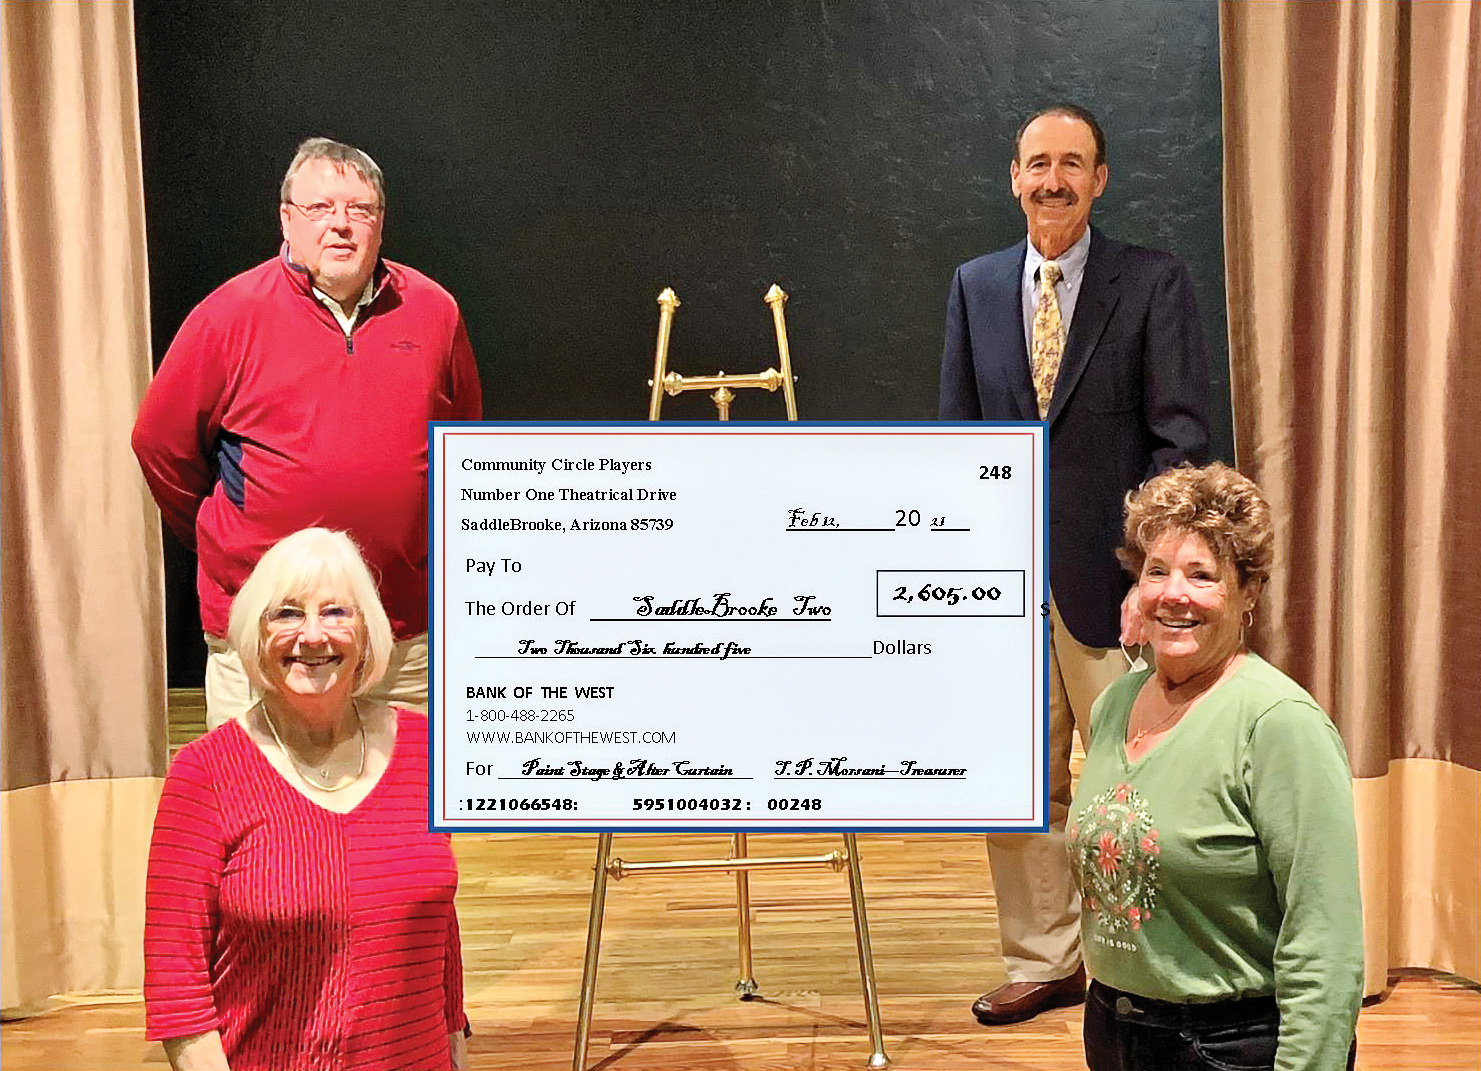 SaddleBrooke TWO Executive Director Damon Williams accepting a check from CCP's CFO Tim Morsani and CCP co-founders Shawne Cryderman and Susan Sterling.